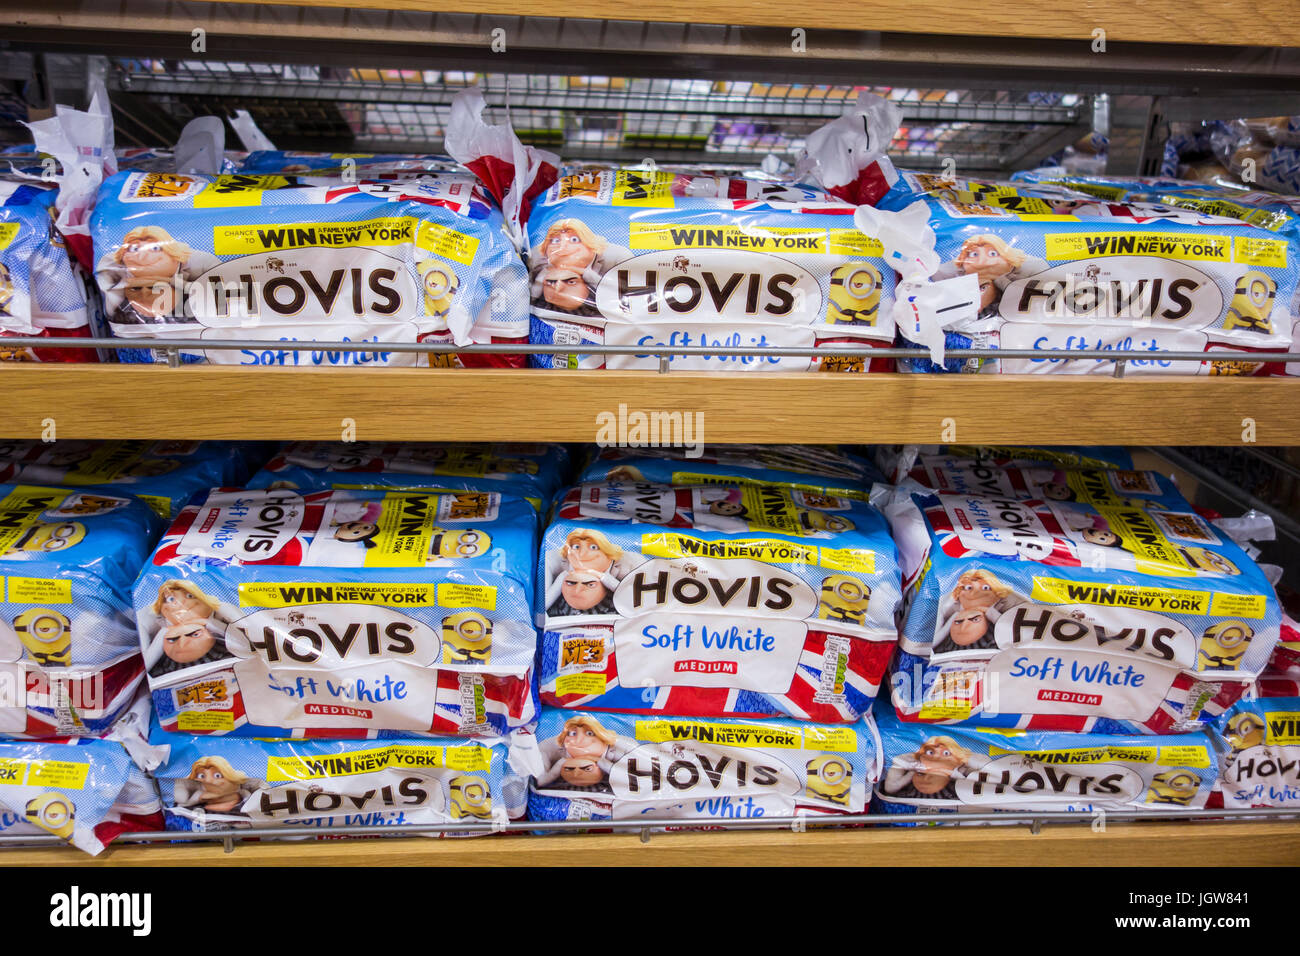 Packs of Hovis Soft White sliced bread for sale on a supermarket shelf in the UK - Stock Image